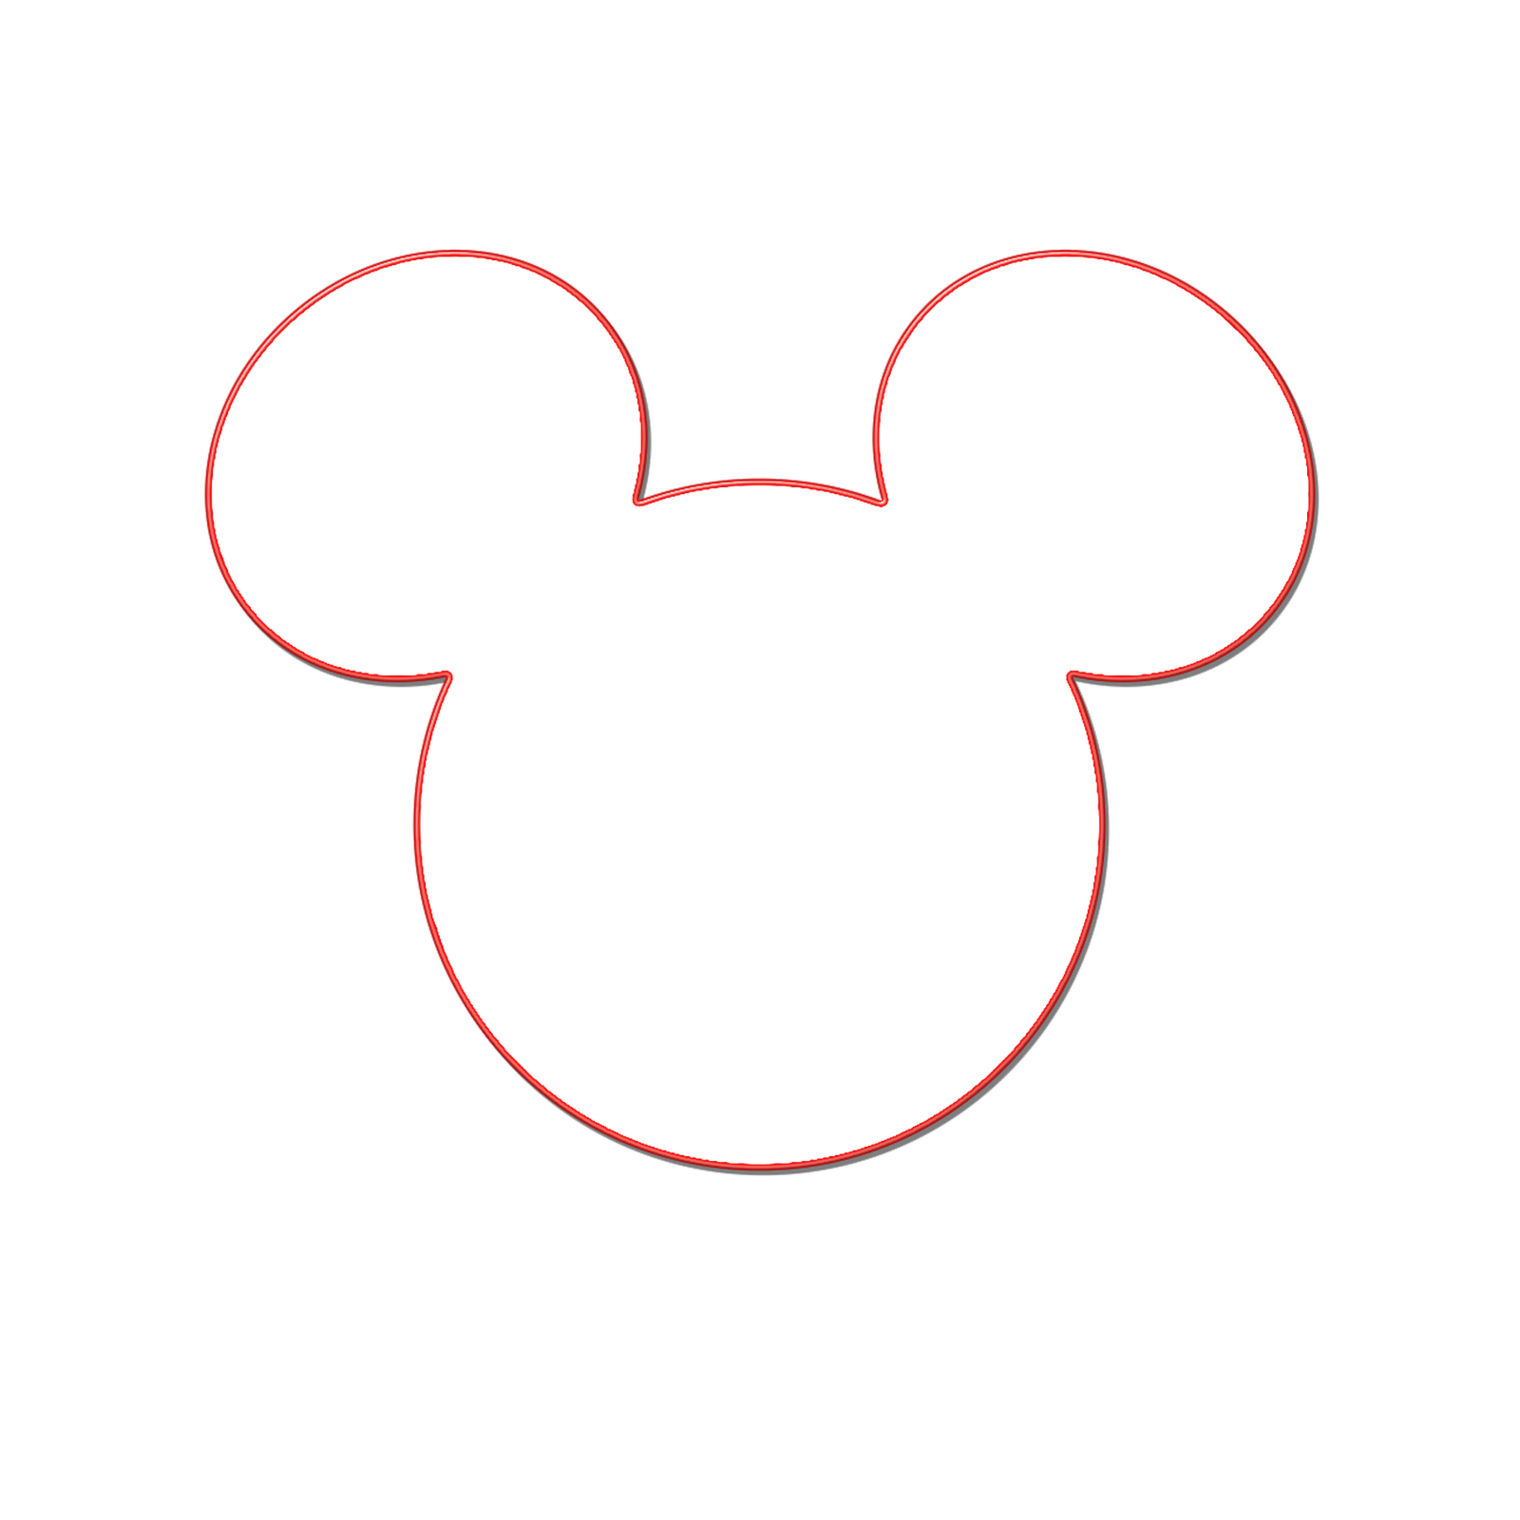 Mickey mouse baseball embroidery design clipart jpg black and white download Silhouette Mickey Mouse Ears at GetDrawings.com | Free for personal ... jpg black and white download